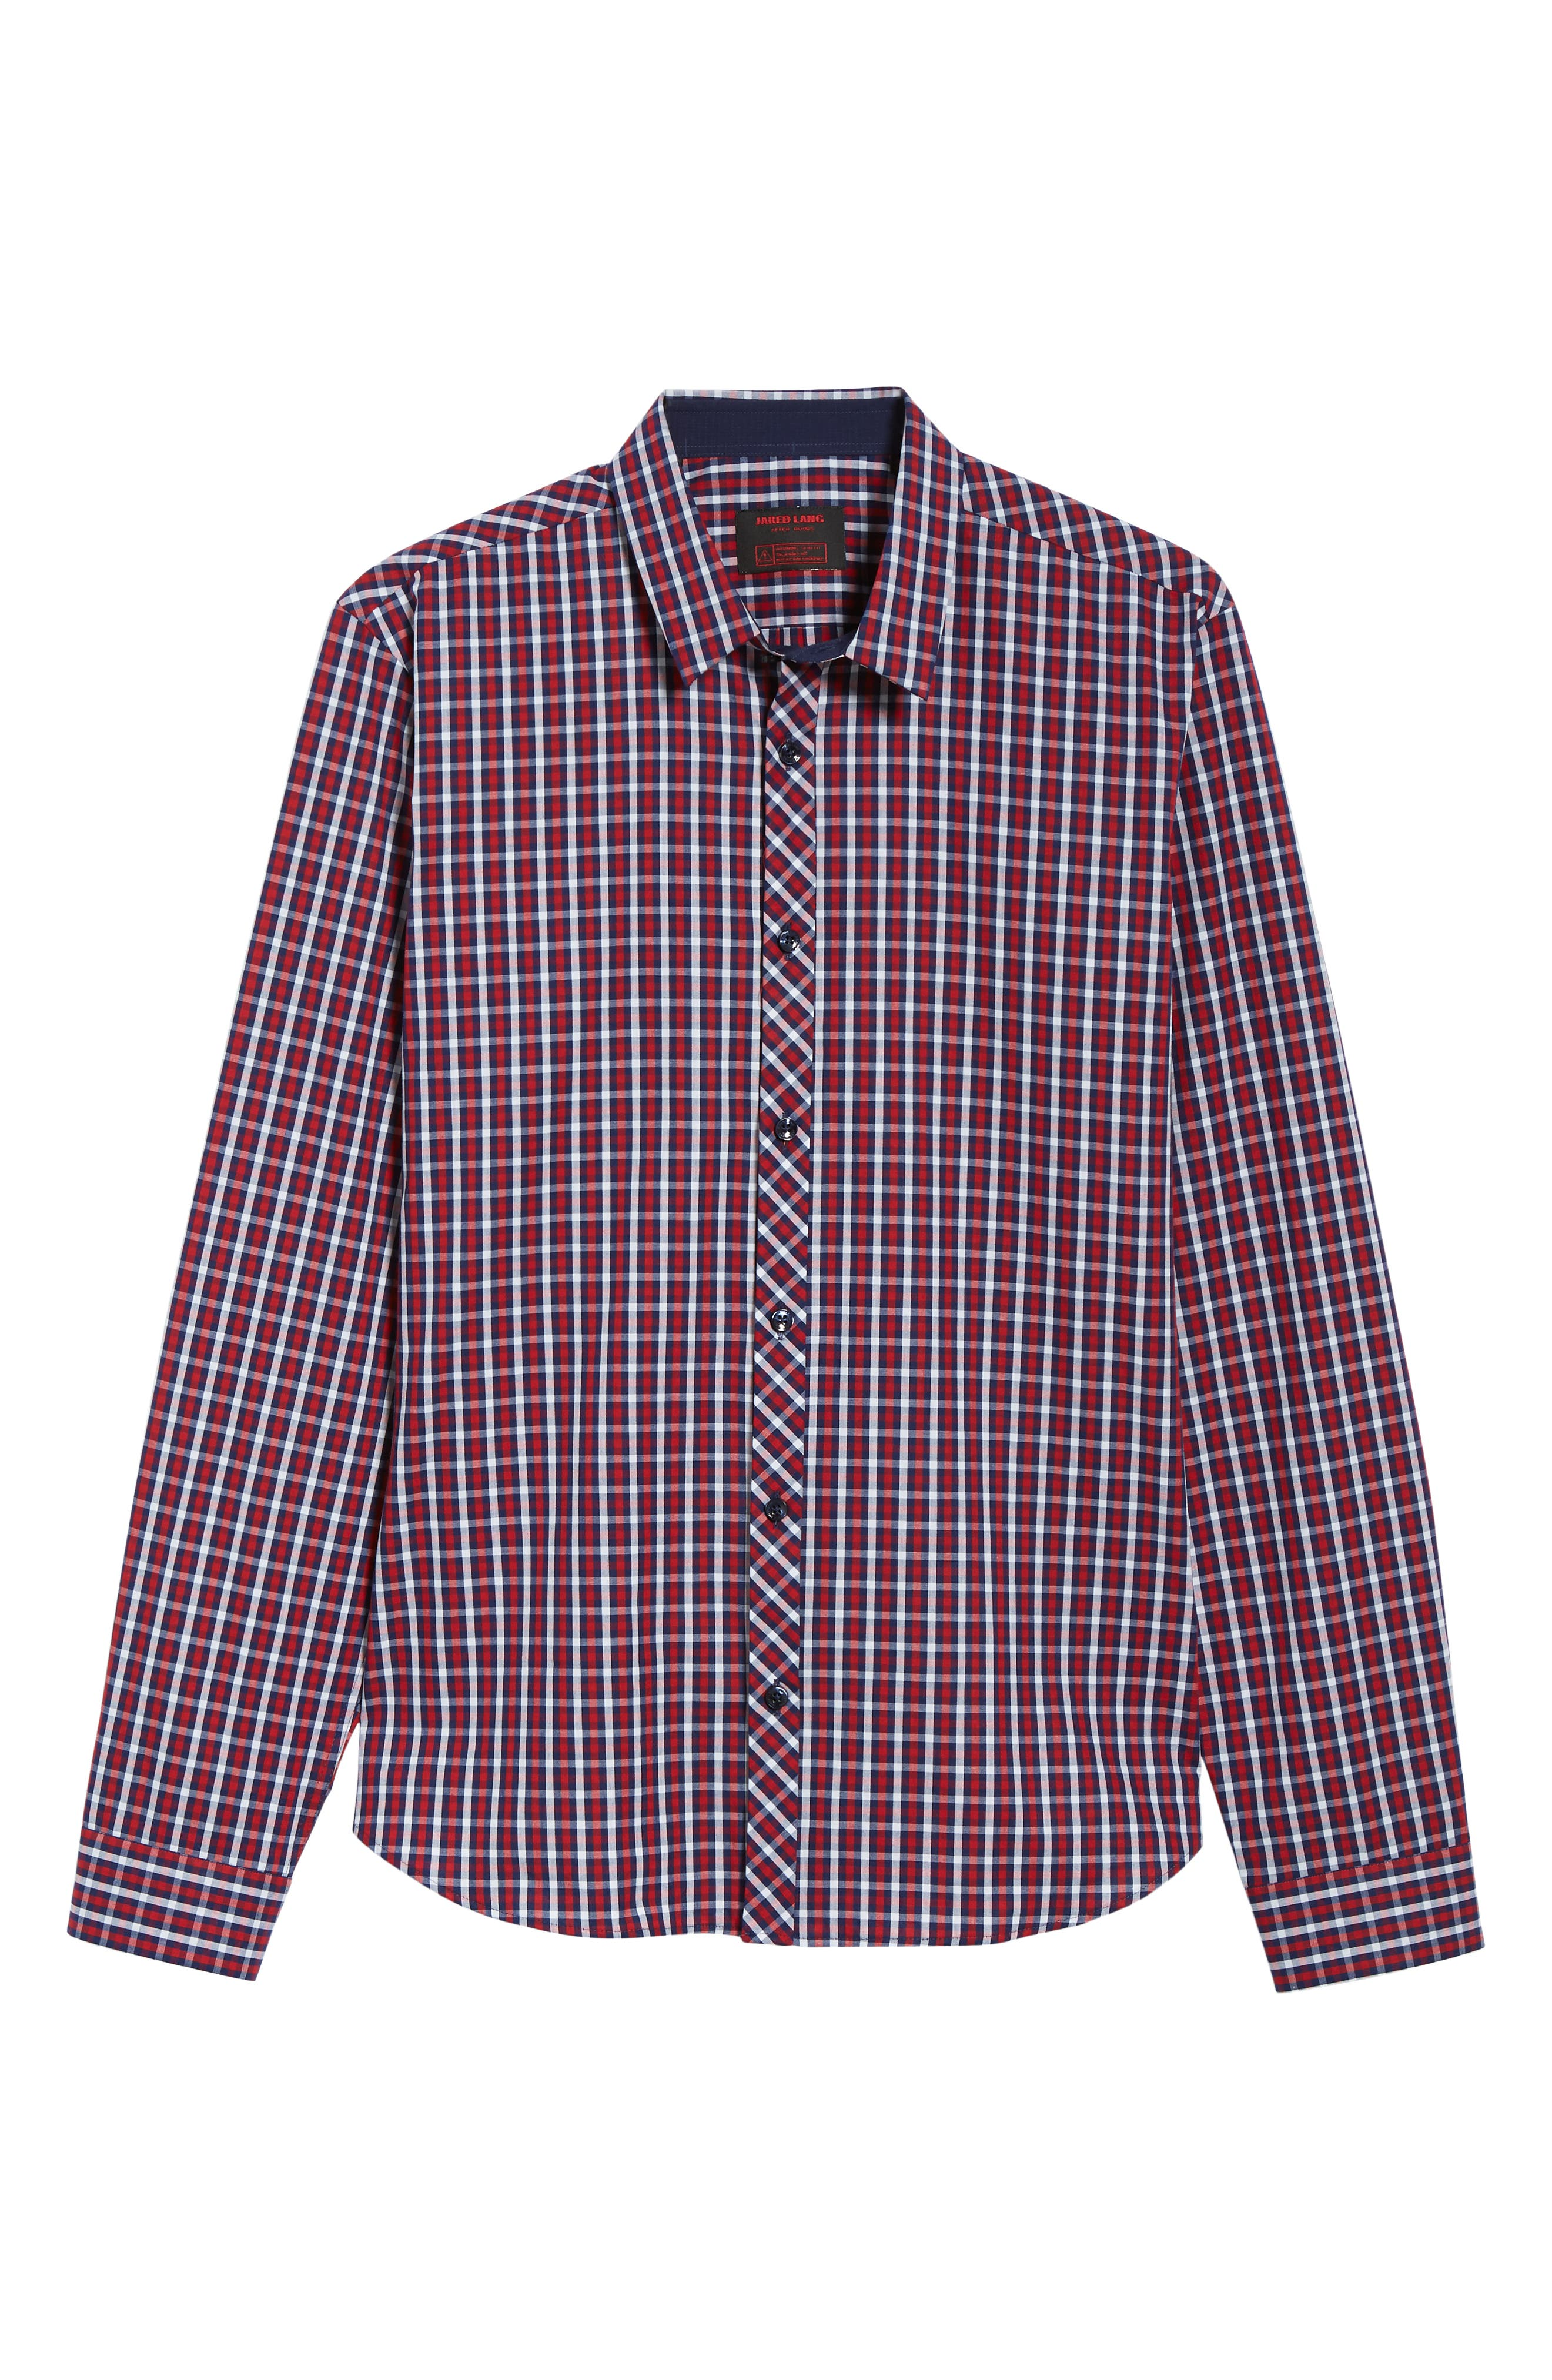 Trim Fit Sport Shirt,                             Alternate thumbnail 5, color,                             Navy Red Check